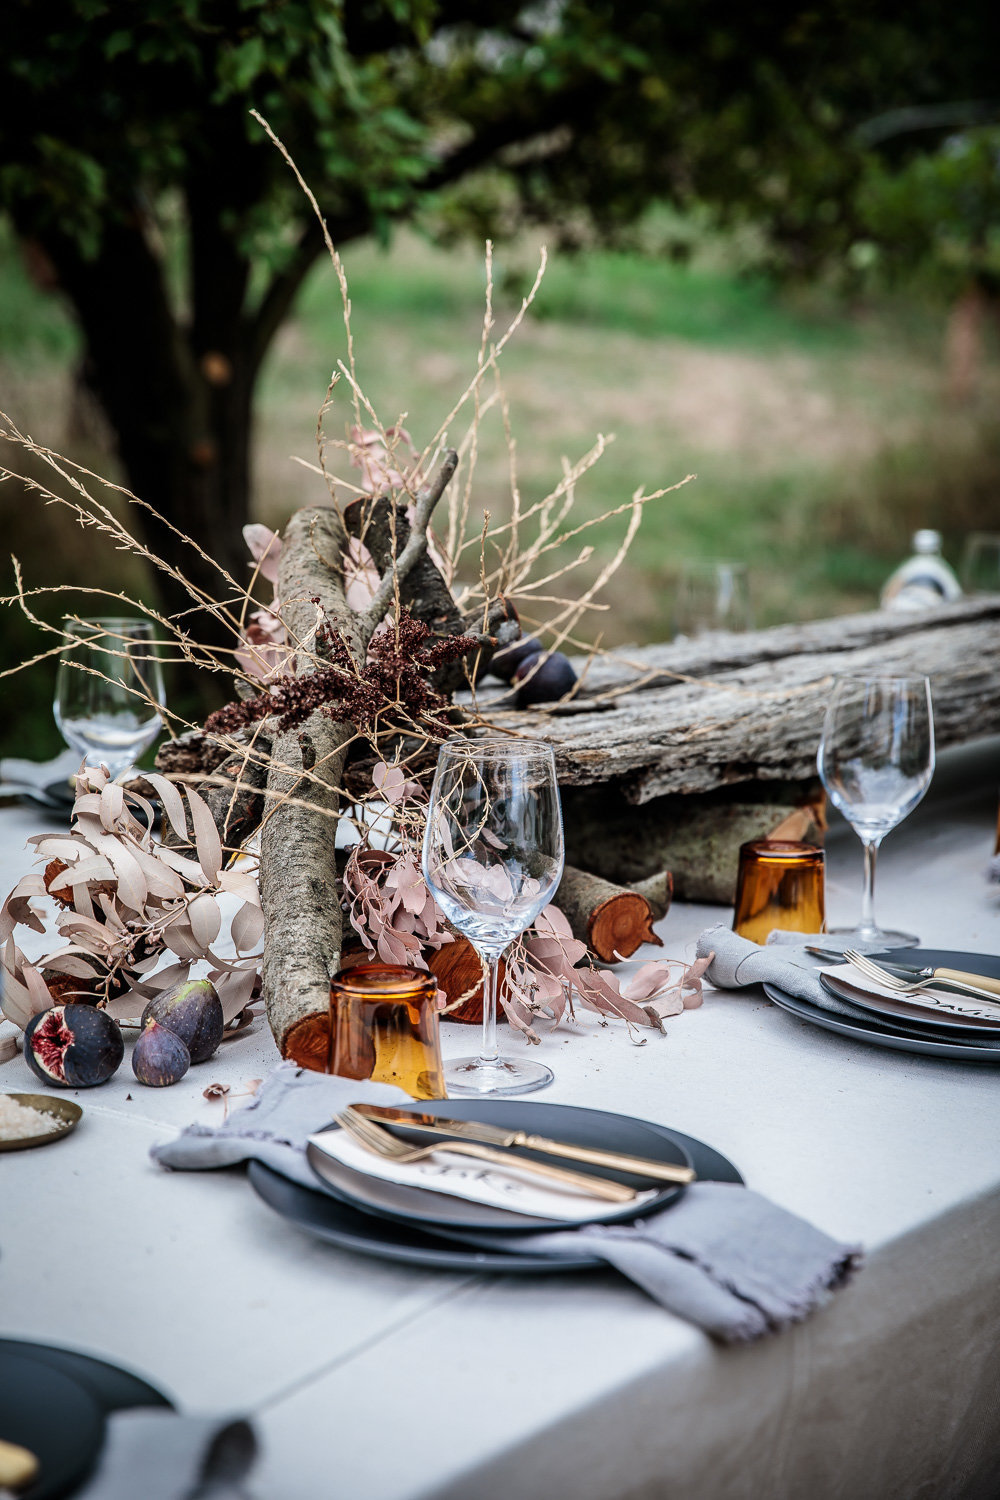 Another Long Table Lunch at Gollion Farm | Canberra | Anisa Sabet | The Macadames | Food Styling | Food Photography | Table Styling451